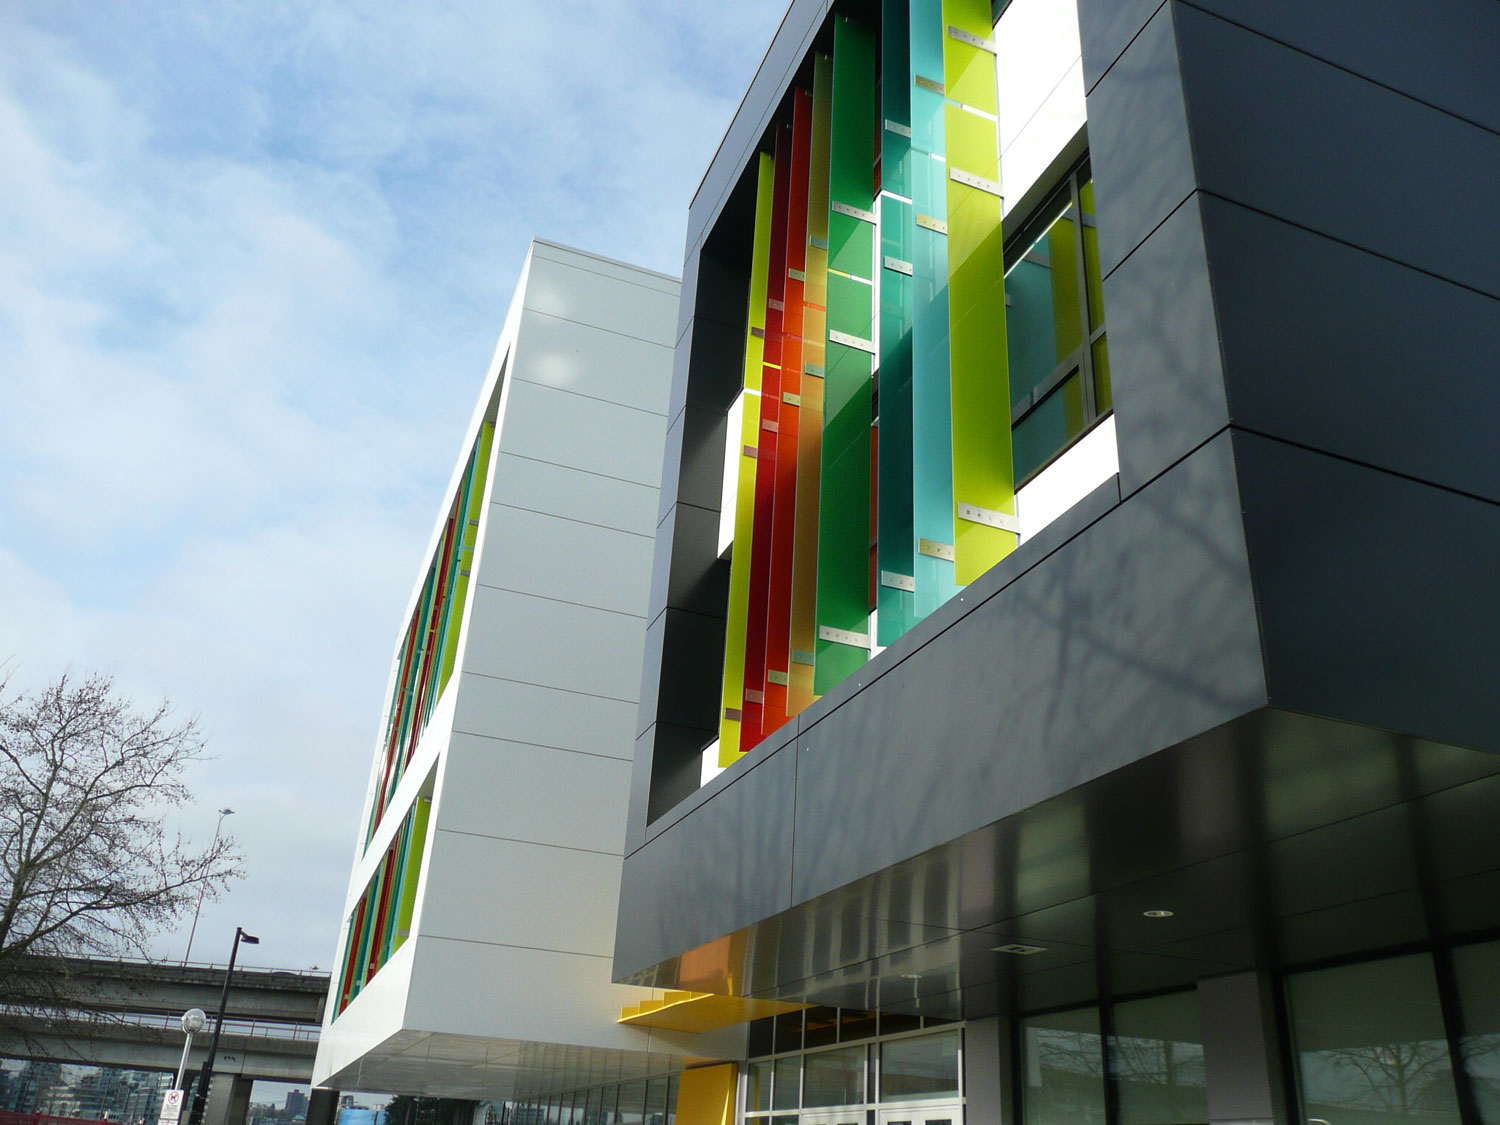 Crosstown Elementary School, Francl Architecture, Vancouver, Keith Panel Systems, Alucobond PLUS, LEED Gold, Photography Alissa Reed